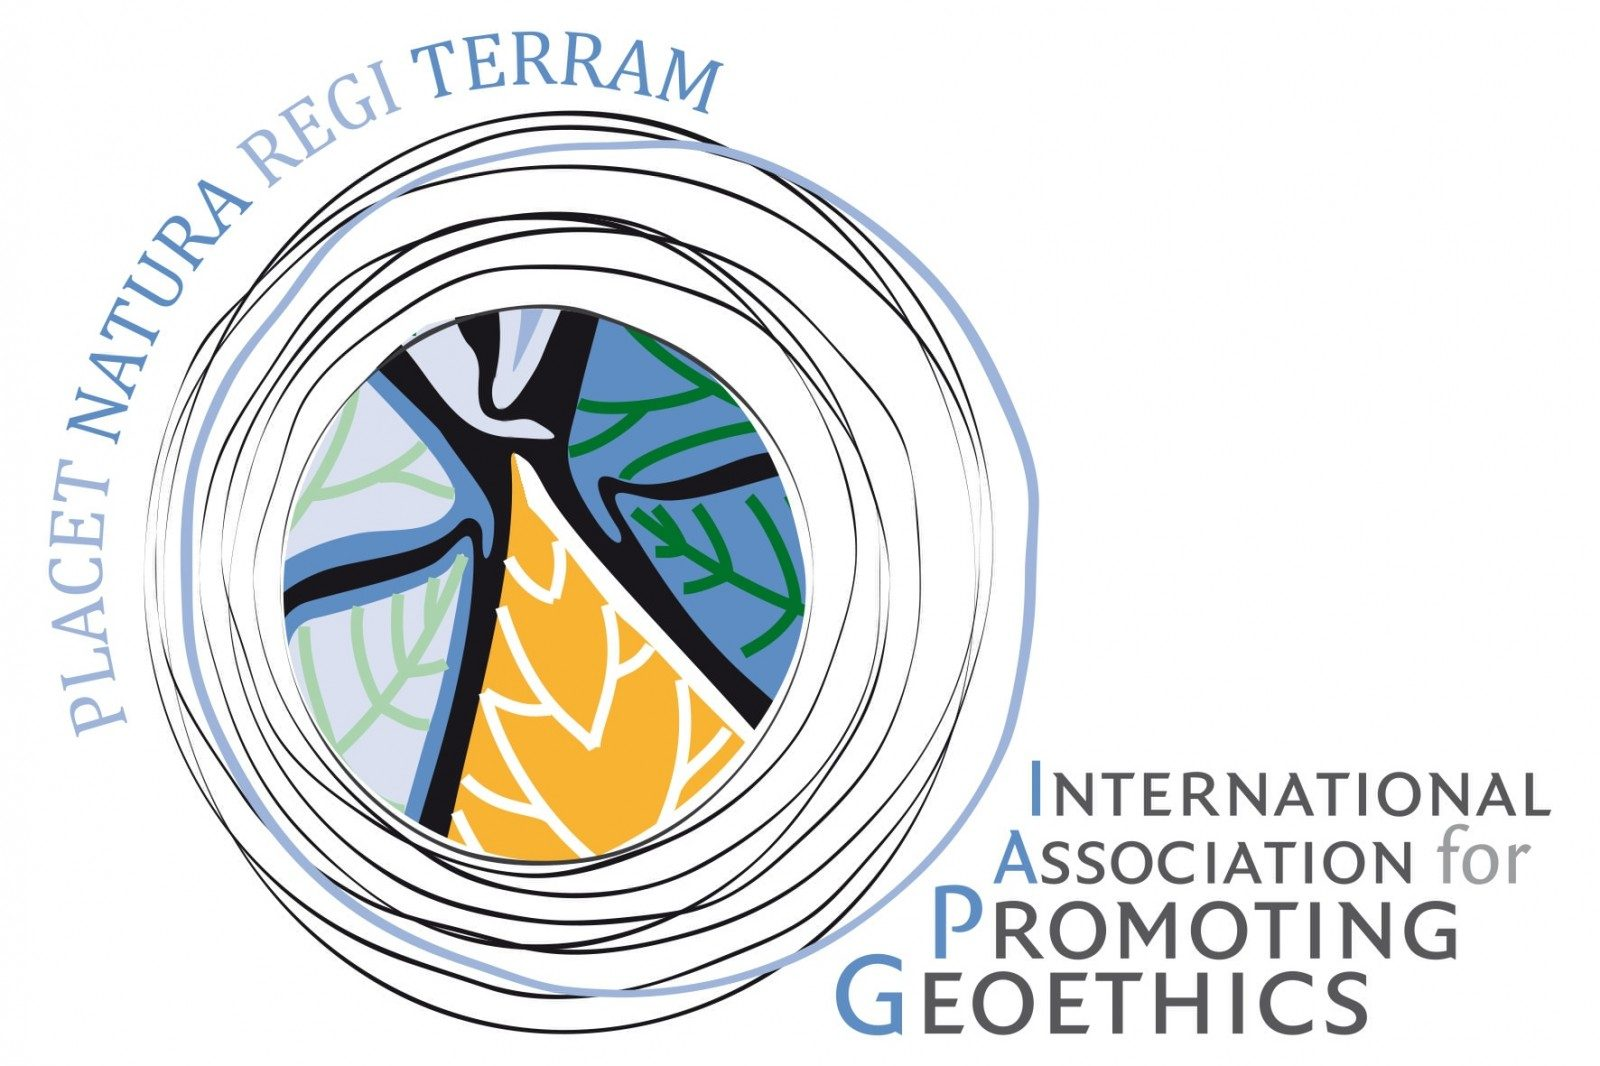 Ethics and Geosciences: discovering the International Association for Promoting Geoethics